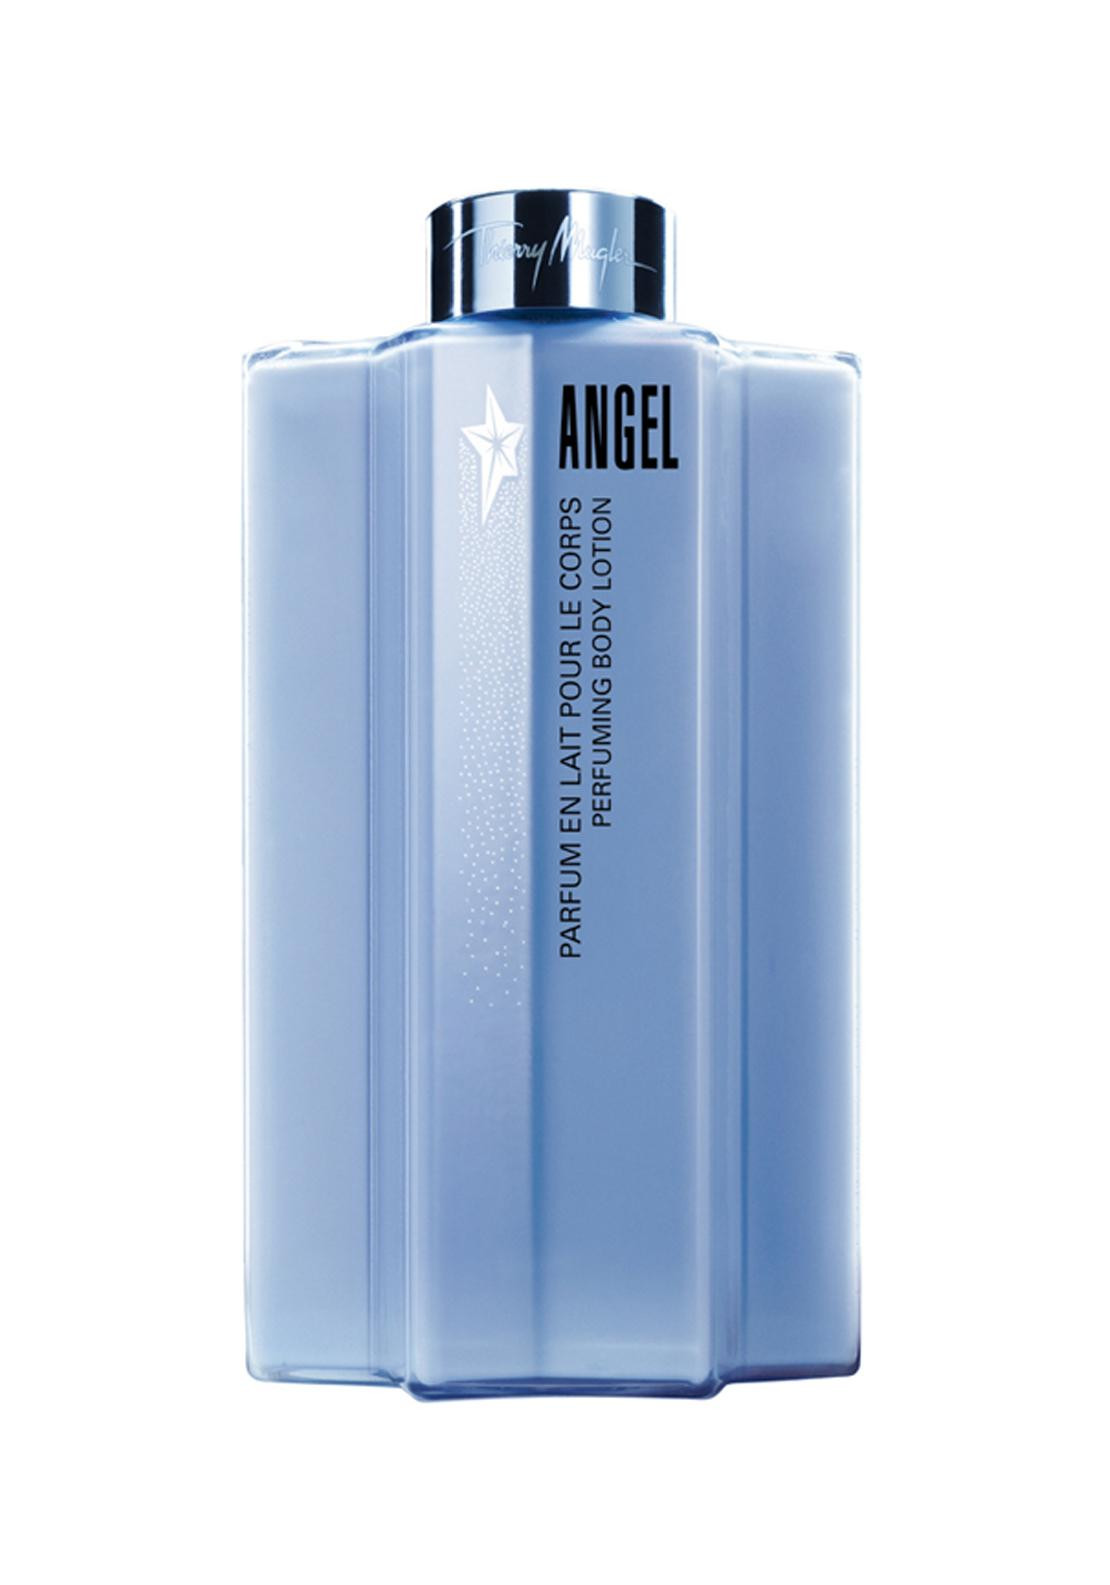 Thierry Mugler Angel Perfuming Body Lotion, 200ml